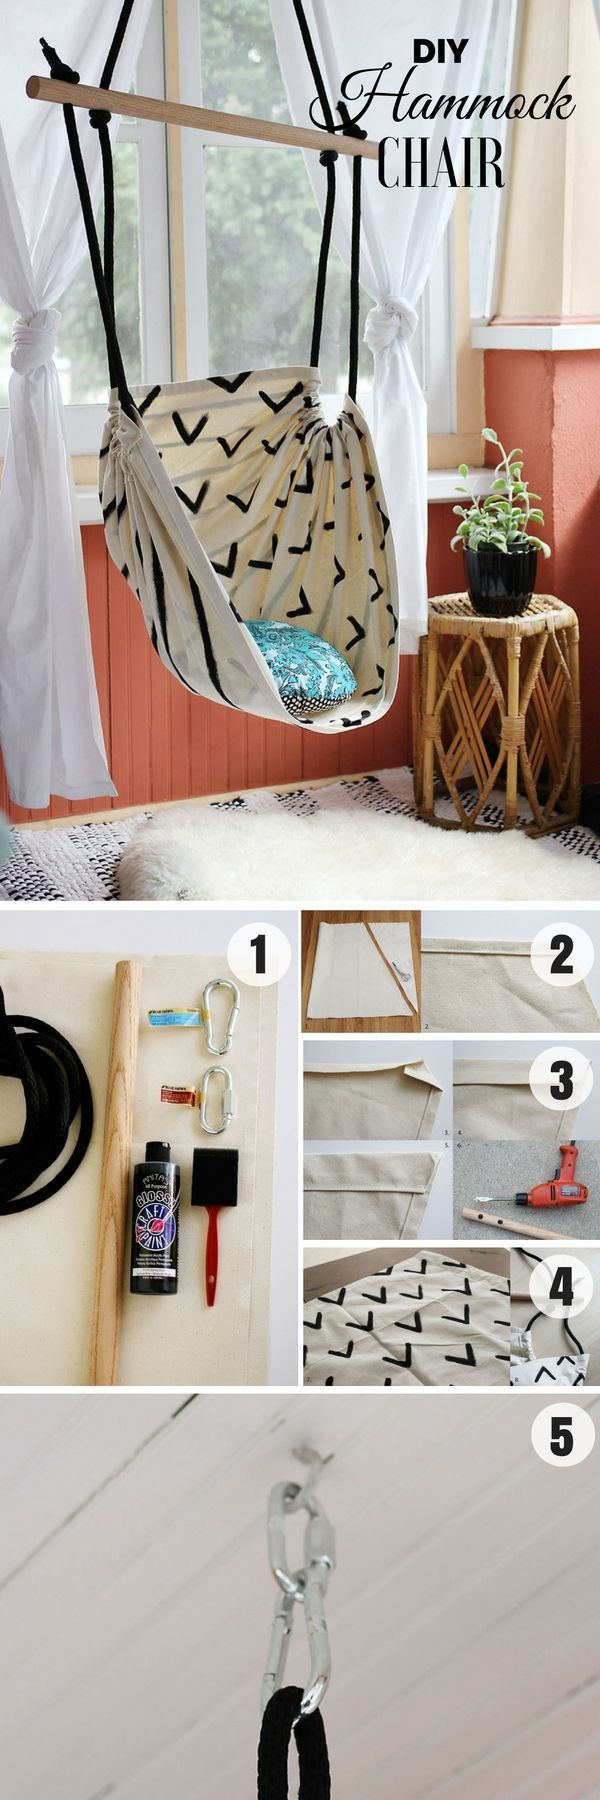 Check Out How To Make An Easy DIY Hammock Chair For Bedroom Decor  /istandarddesign/ | Easy Home Decor | Pinterest | Diy Hammock, Hammock Chair  And Bedrooms